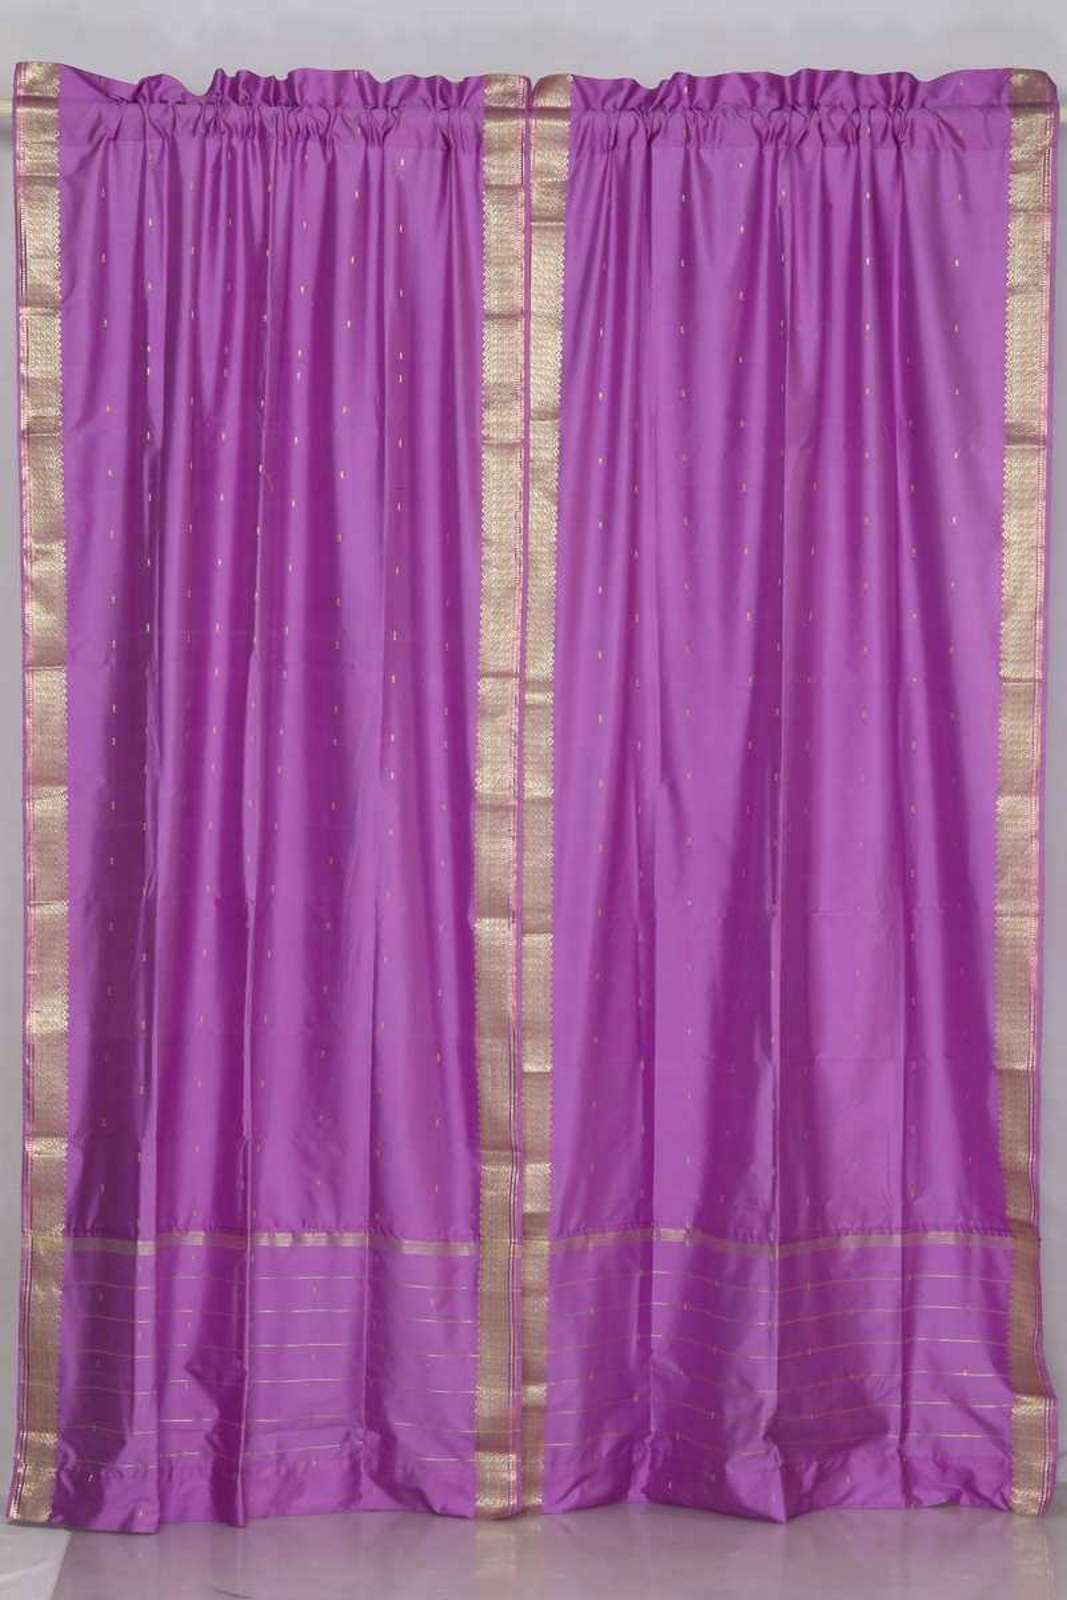 Lavender Sheer Curtains Lavender Rod Pocket Sheer Sari Curtain Drape Panel Pair